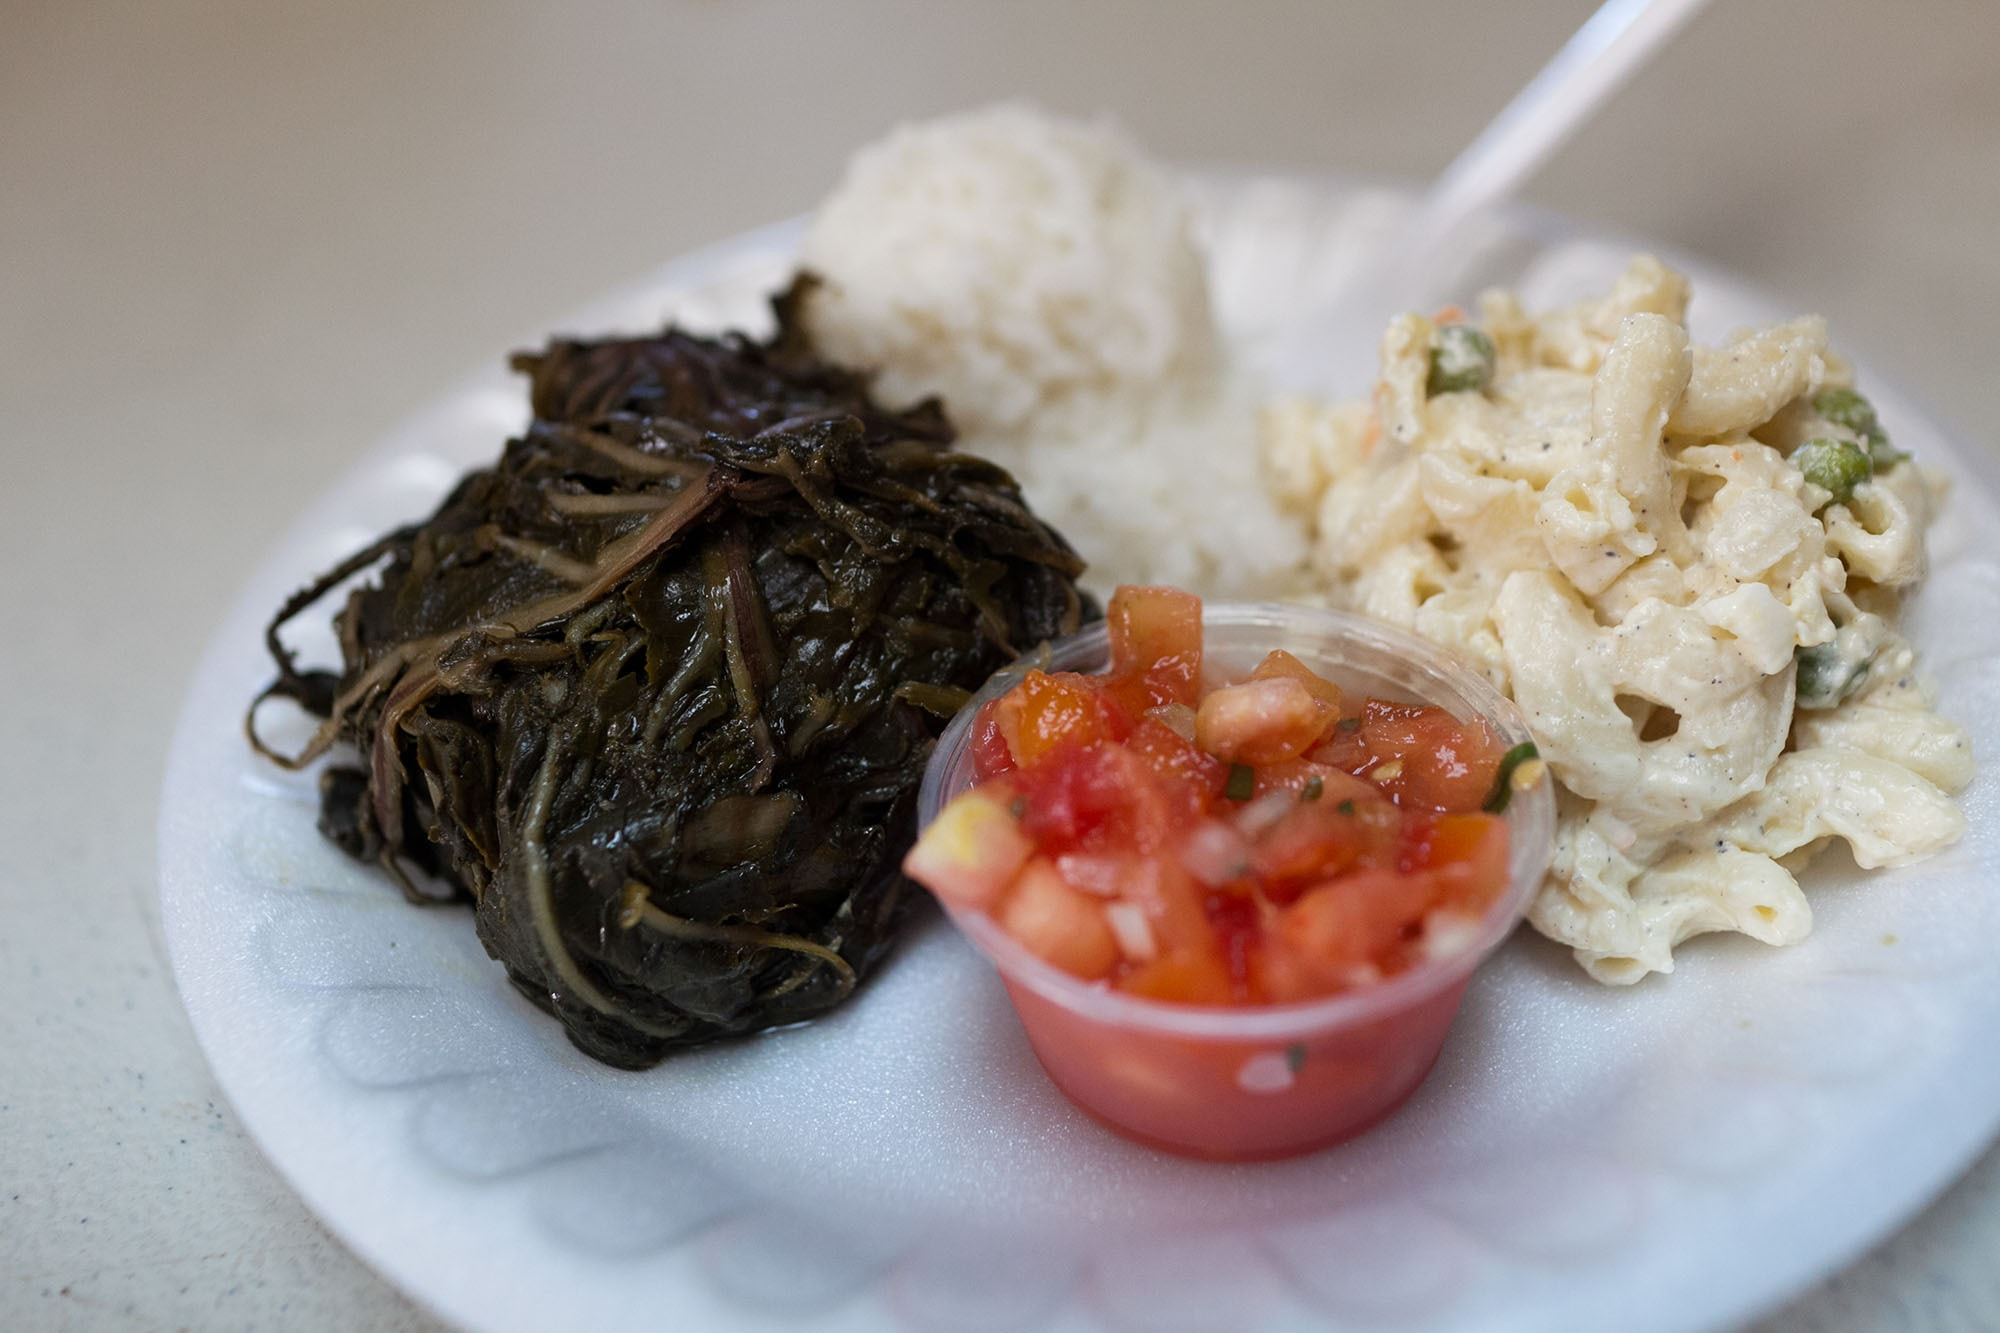 Pork laulau at Ka'aloa's Super J's Authentic Hawaiian on the Hawaiian Big Island in Hawaii